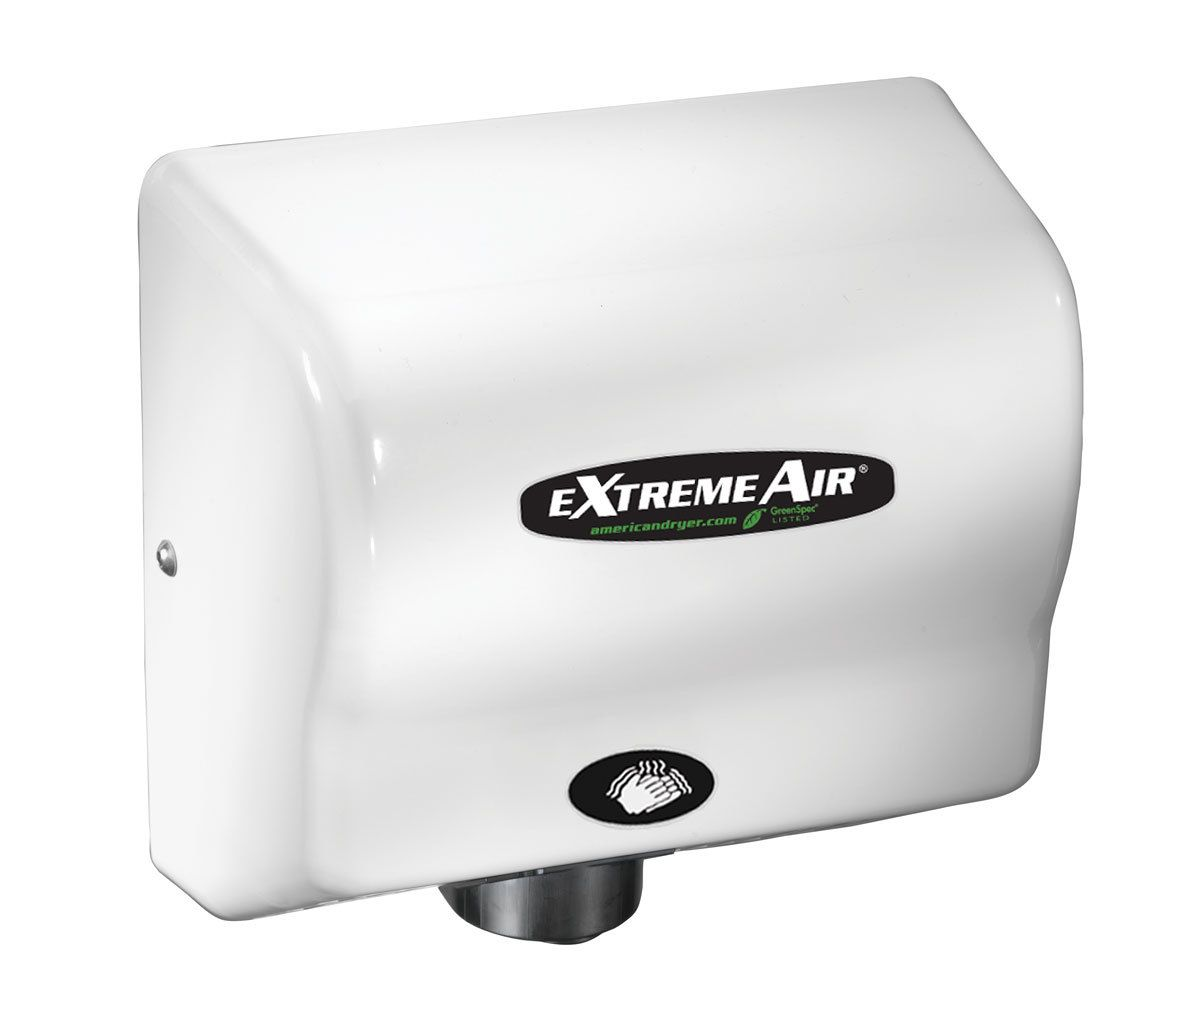 Händetrockner World Dryer American Dryer Extremeair Gxt9 Hand Dryer Heated White Abs